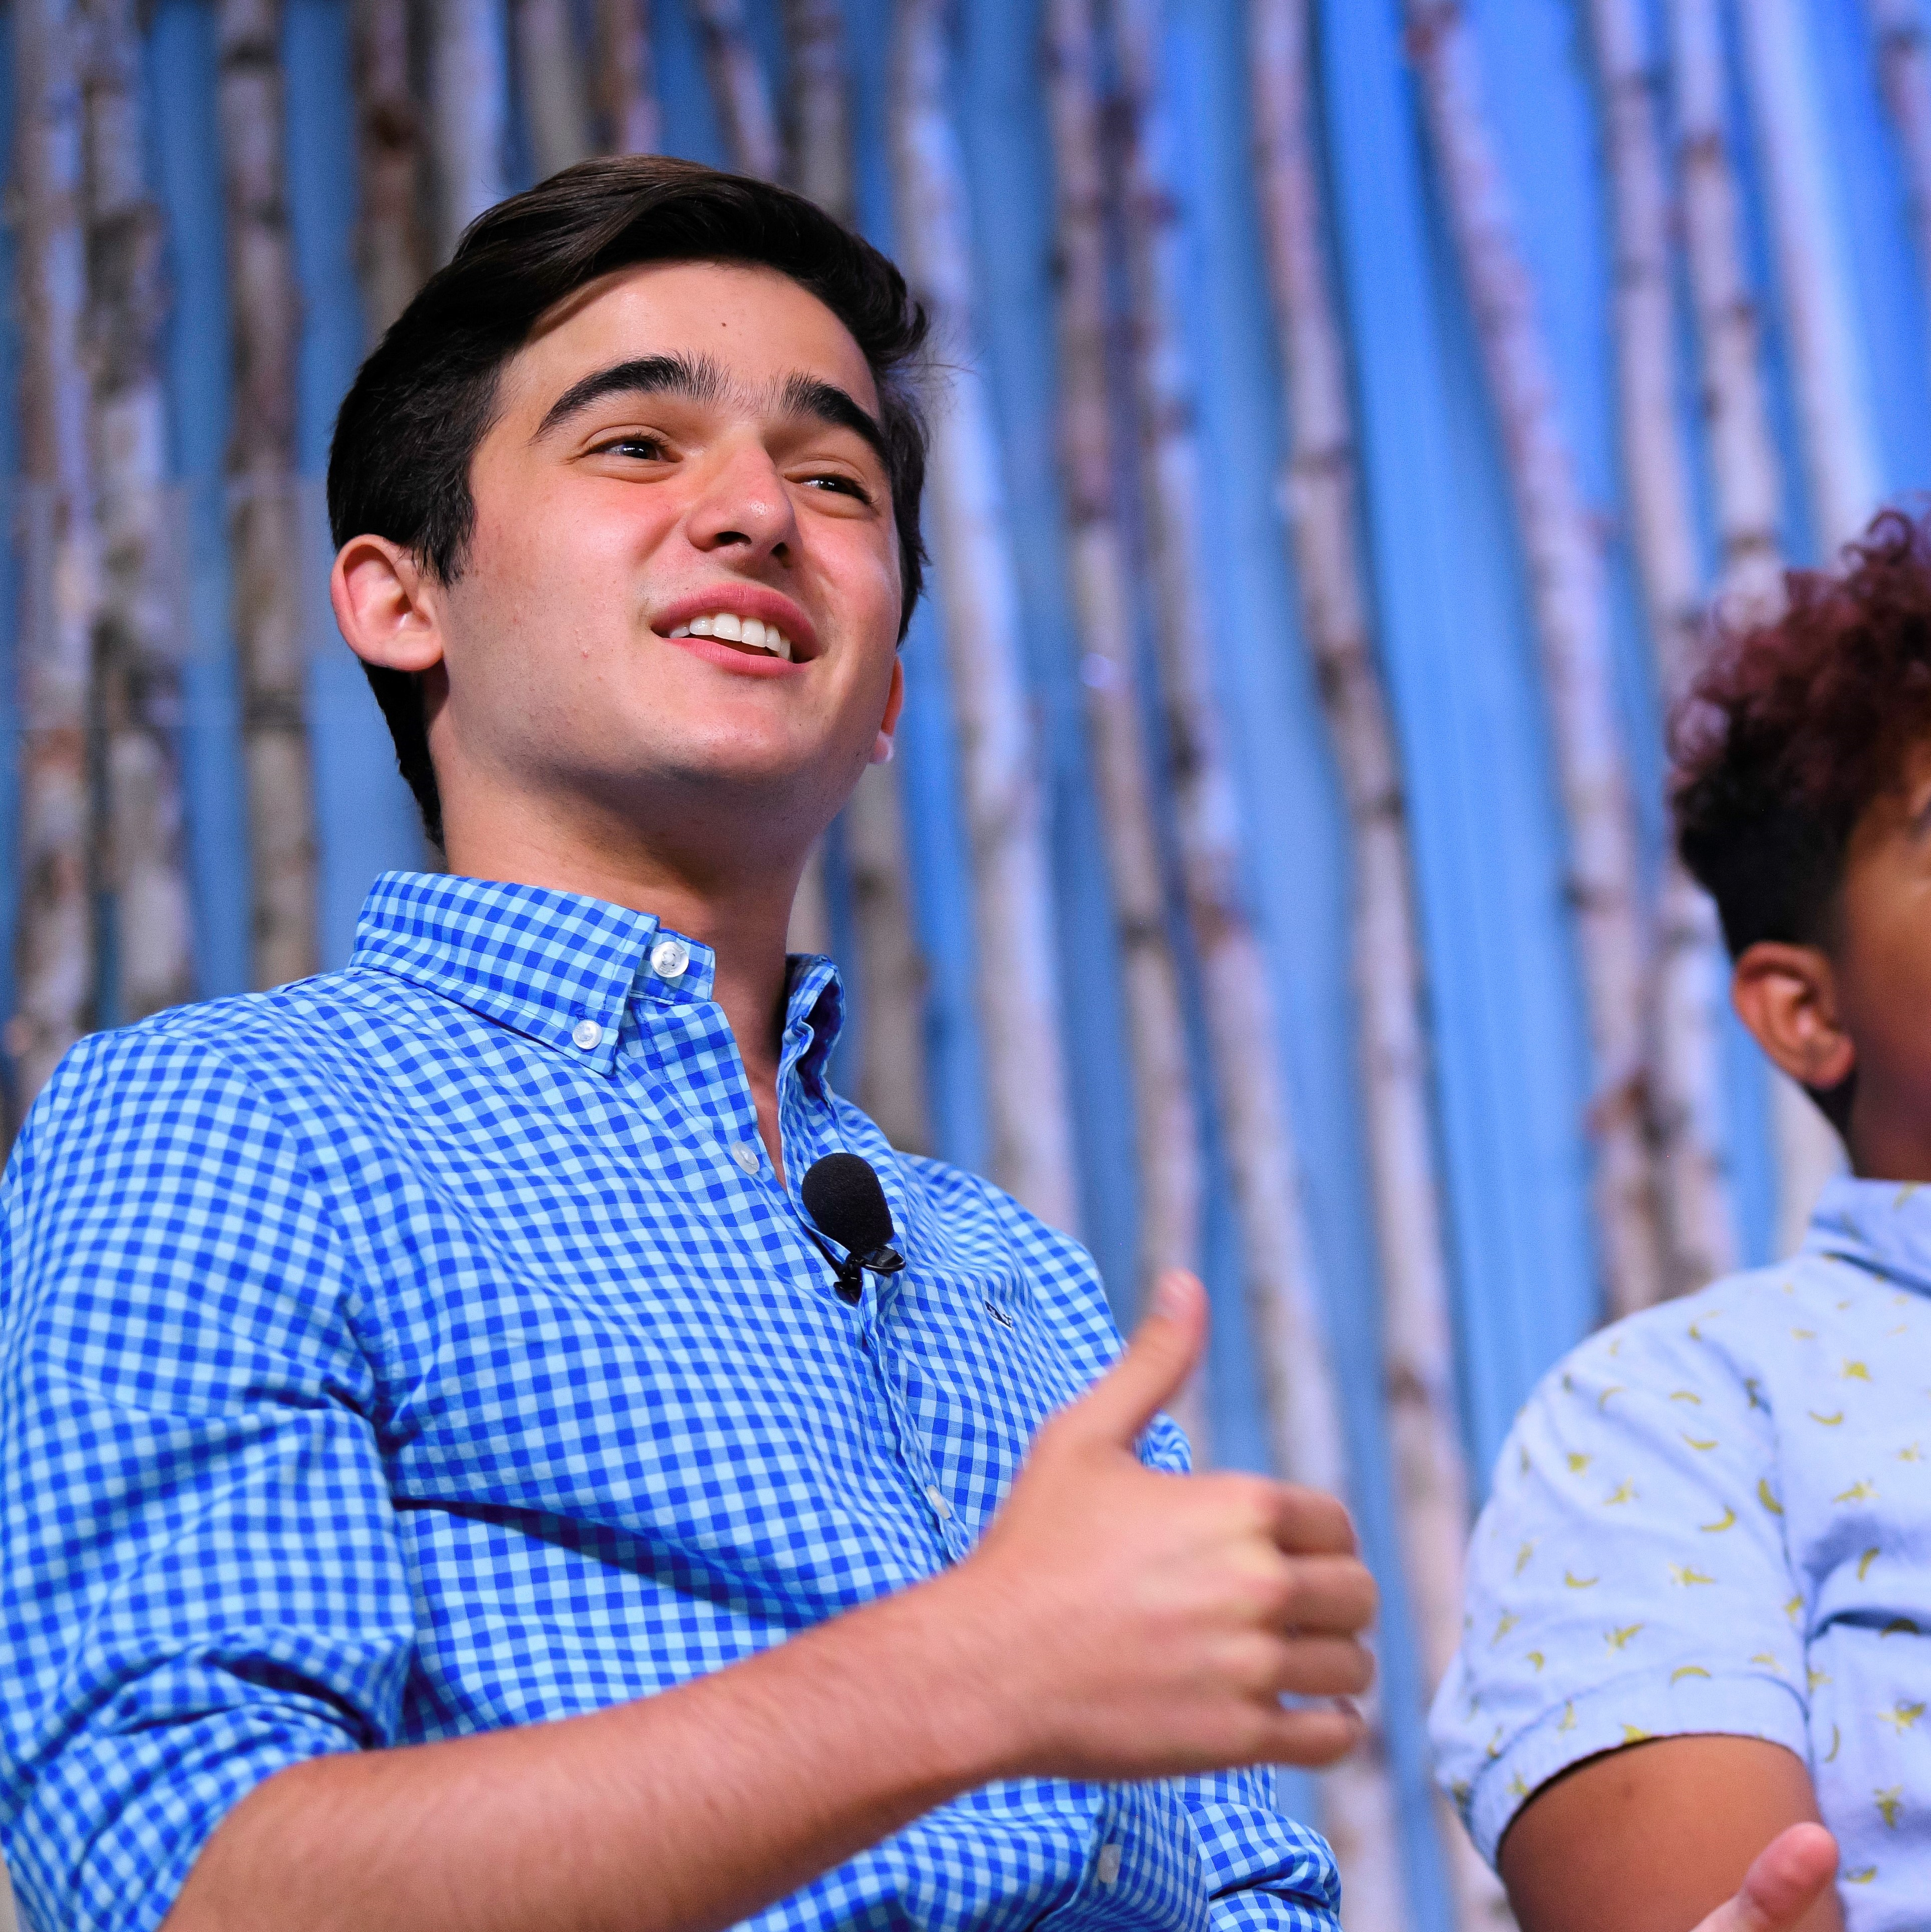 Salvador Gomez On His Experience At The Youth Action Forum 201